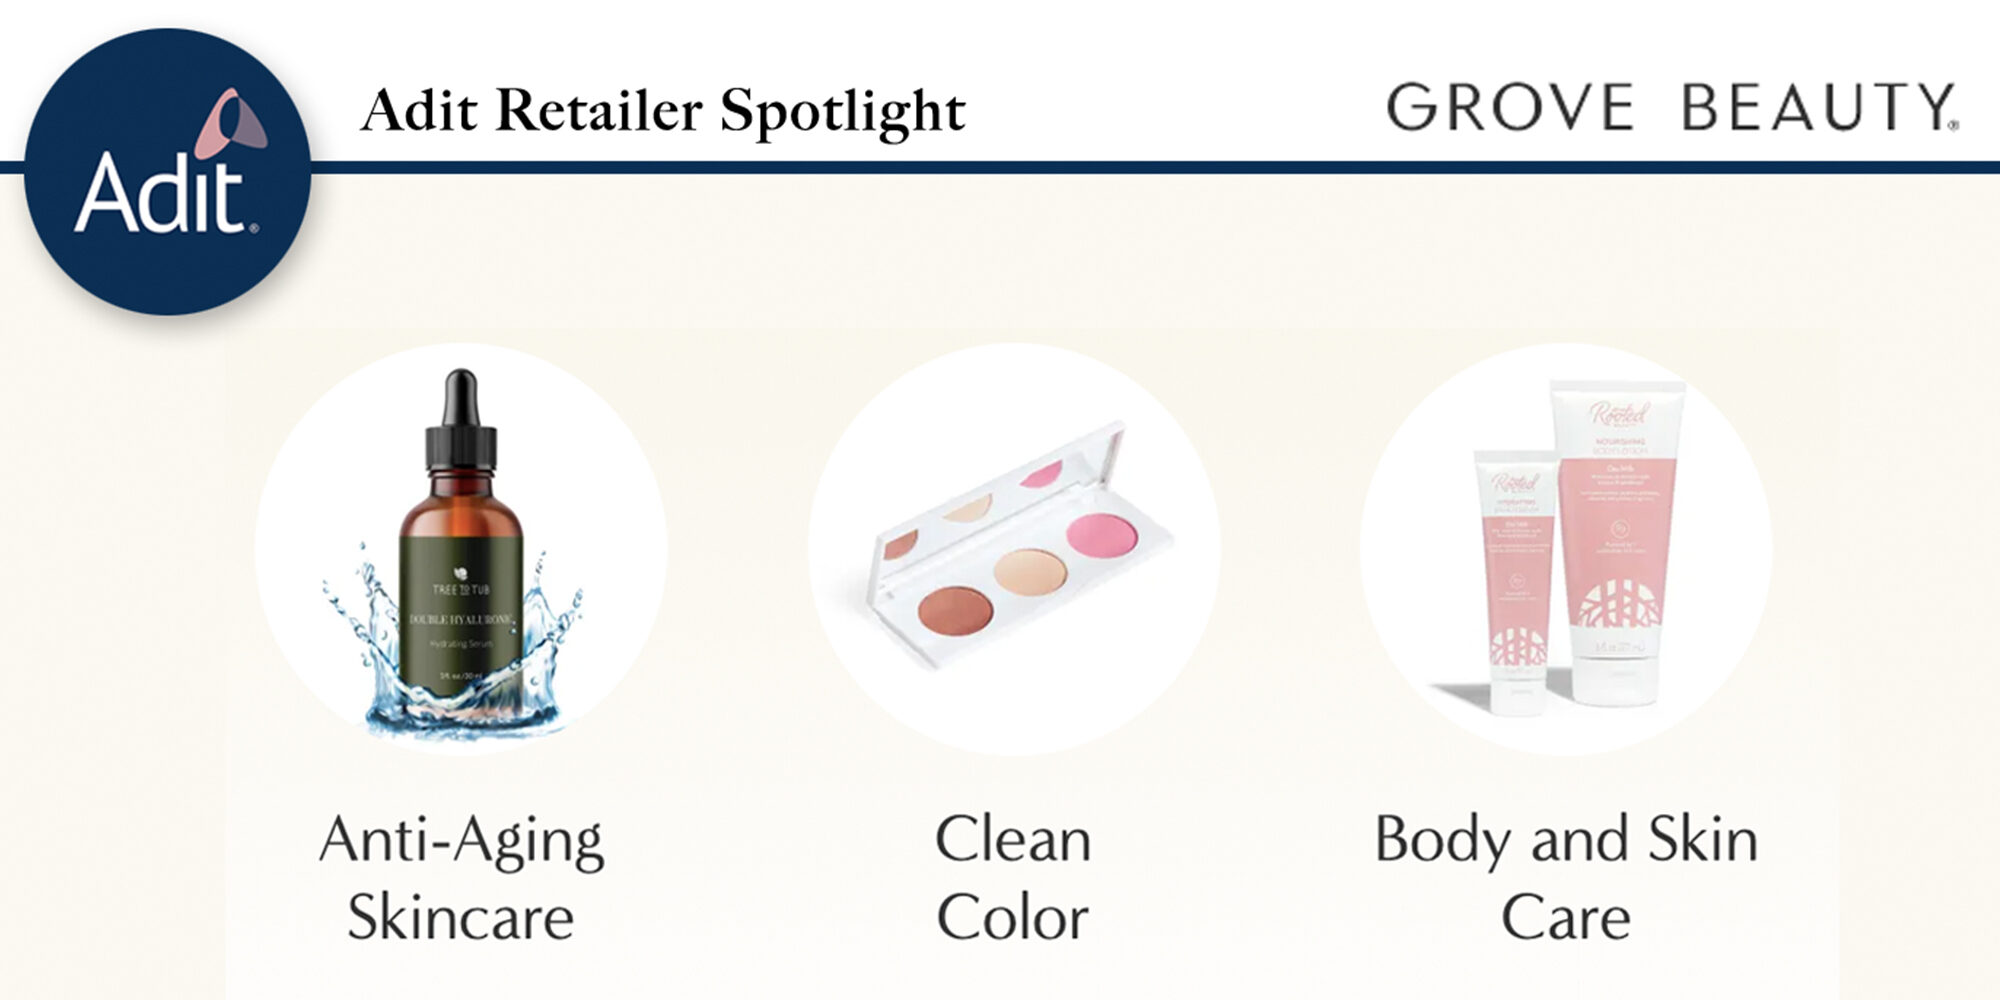 Grove Collaborative's Strict Brand Criteria Are Designed To Foster A More Ethical CPG Industry